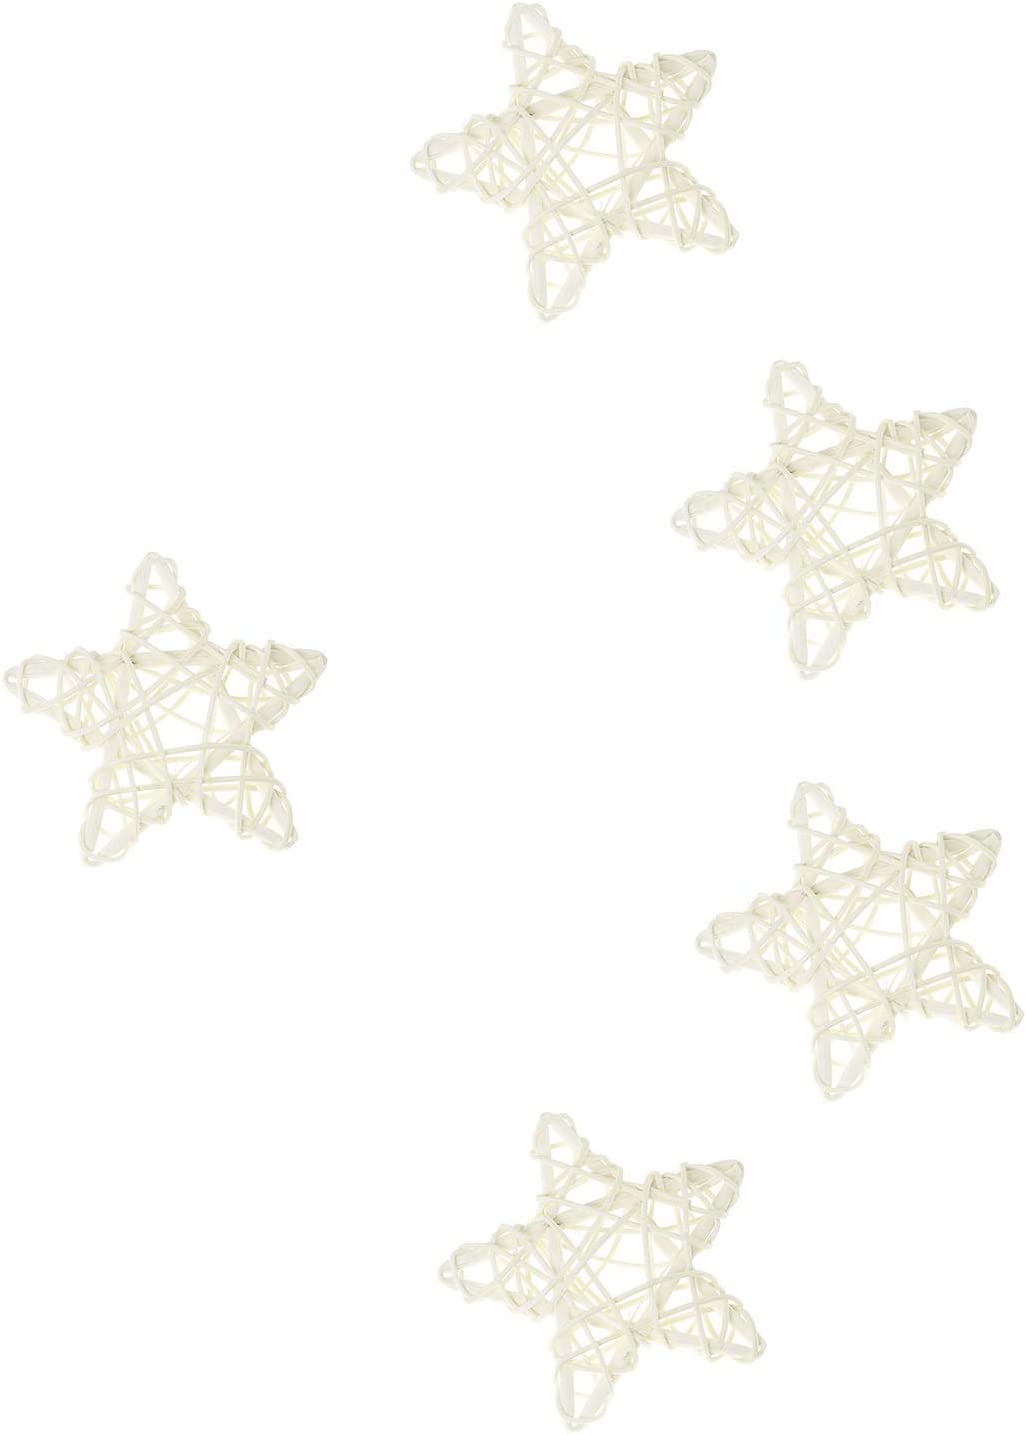 DIY NX Garden Hanging Embellishments 10PCS White Wooden Stars Shaped Hanging Embellishments Decoration for Christmas Wedding,Crafts